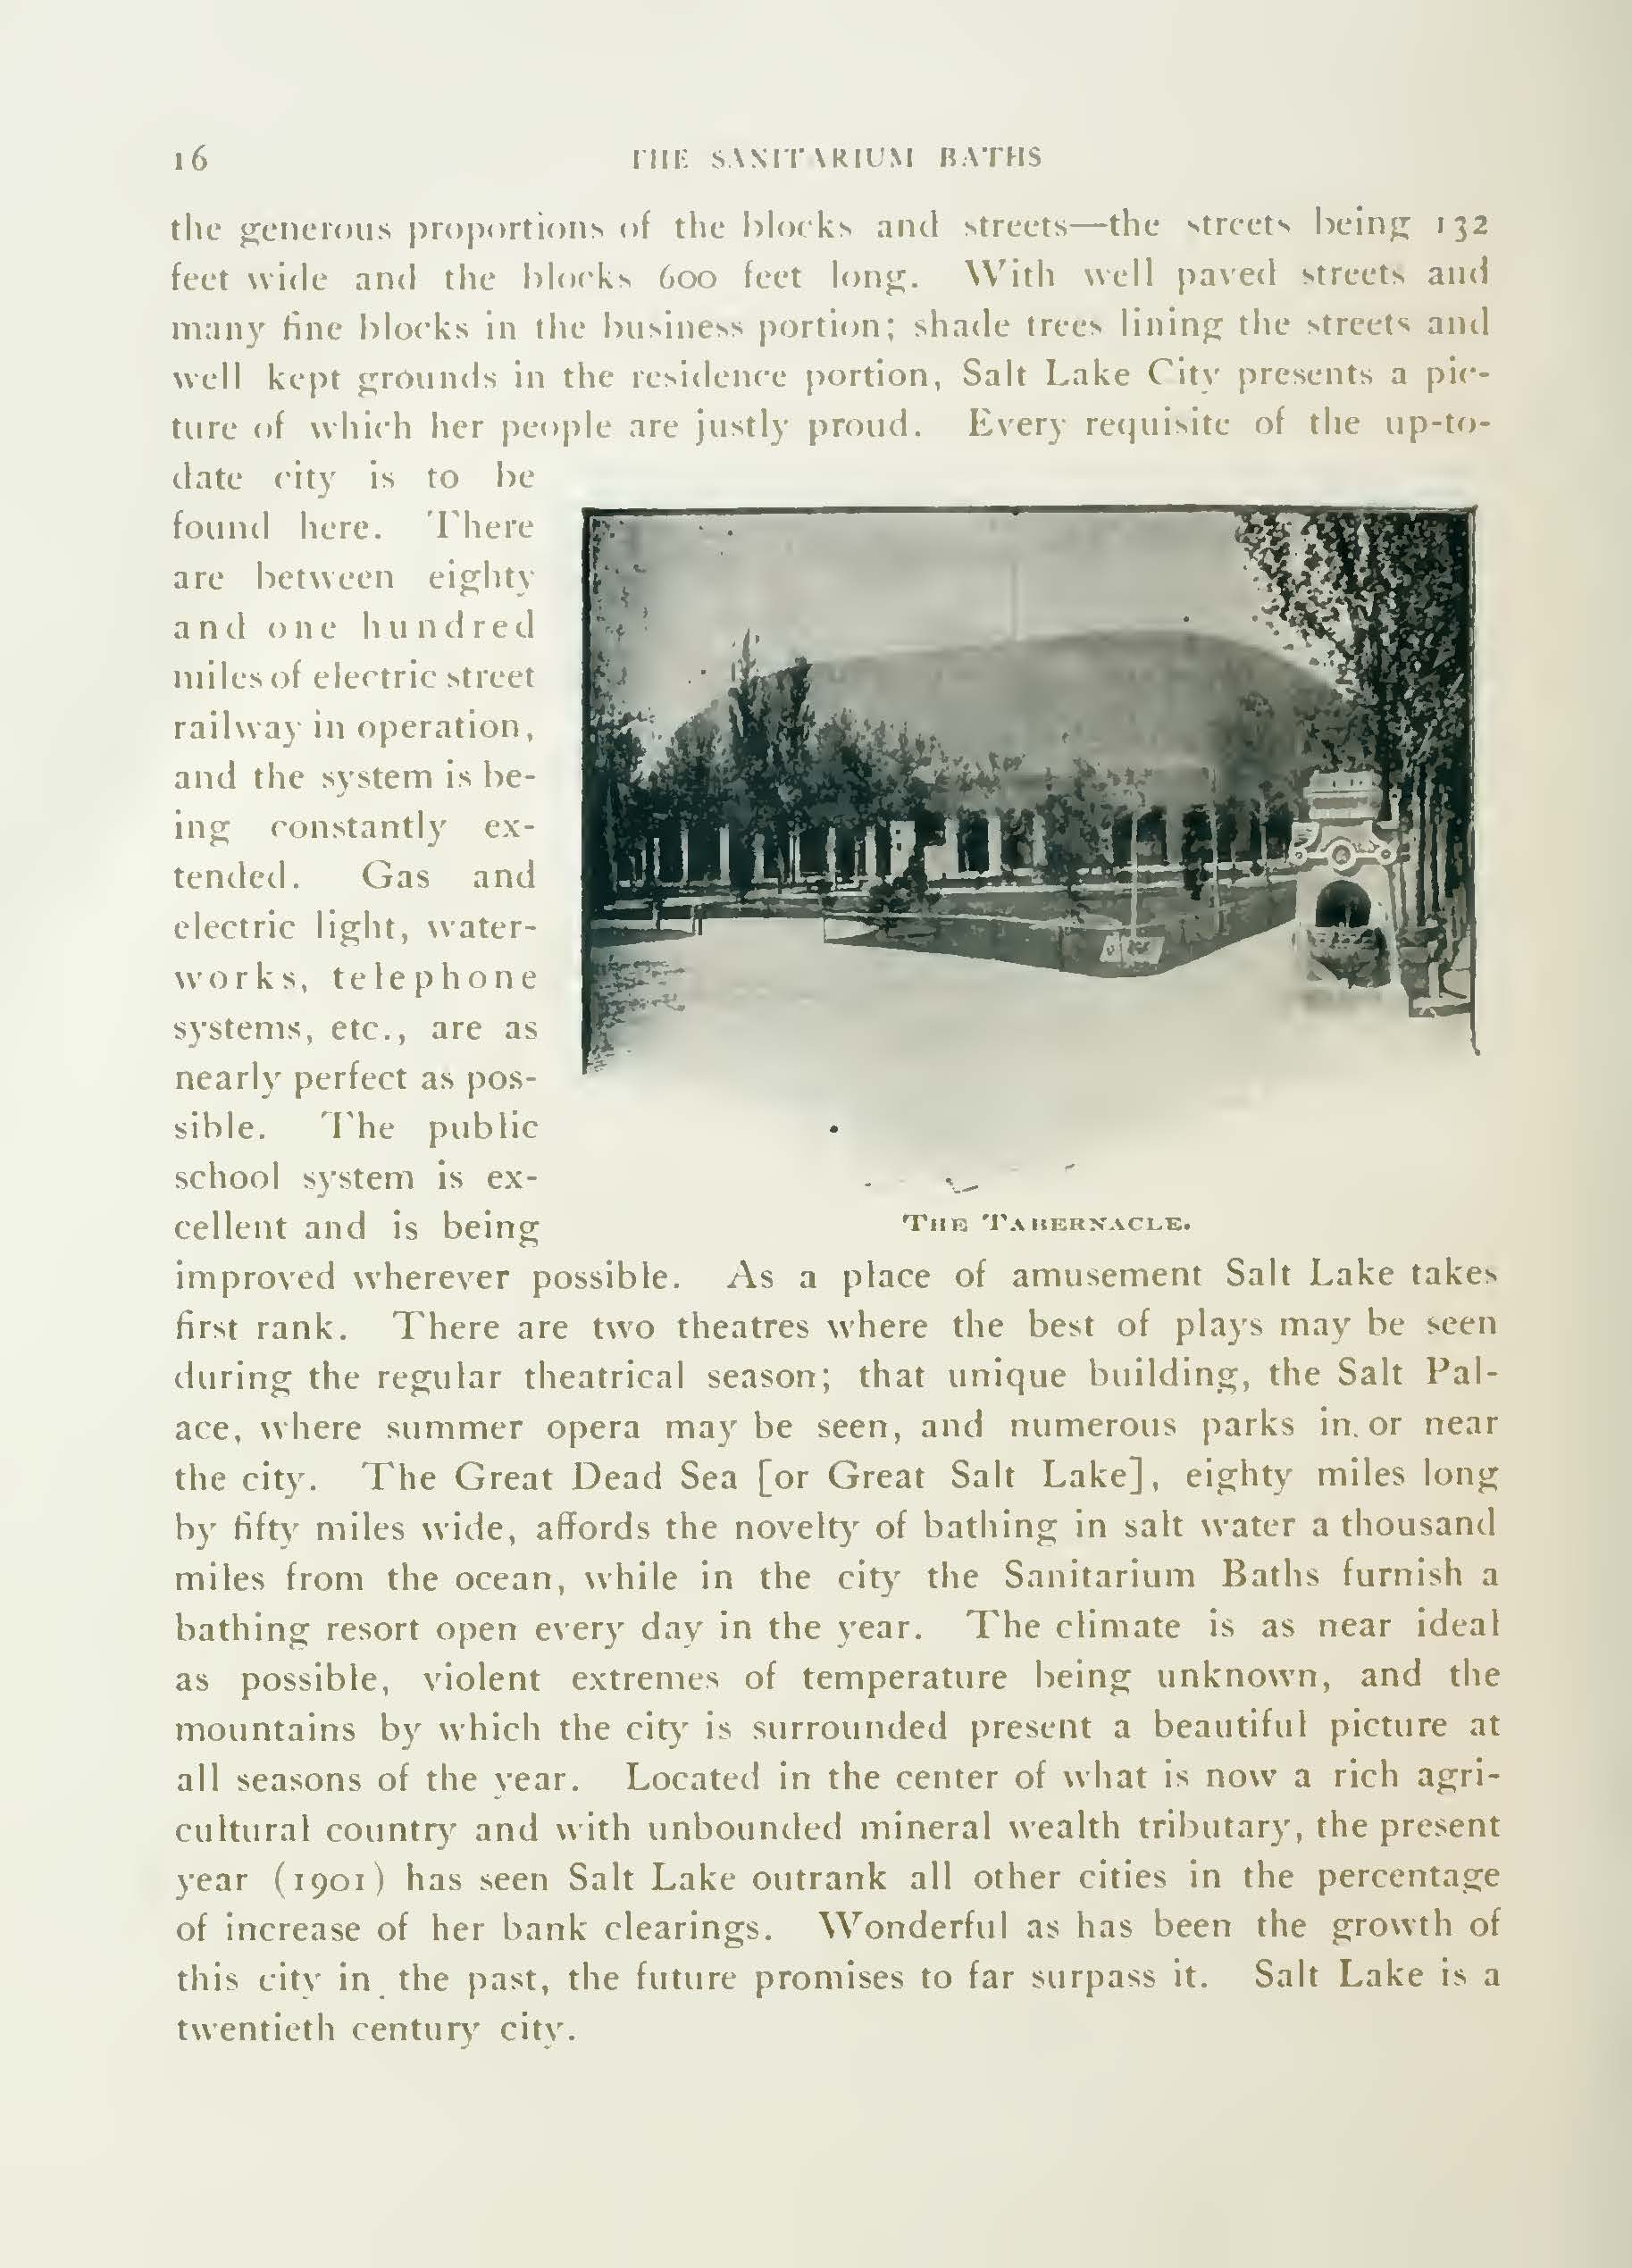 The-sanitarium-bath-1901-Page-18